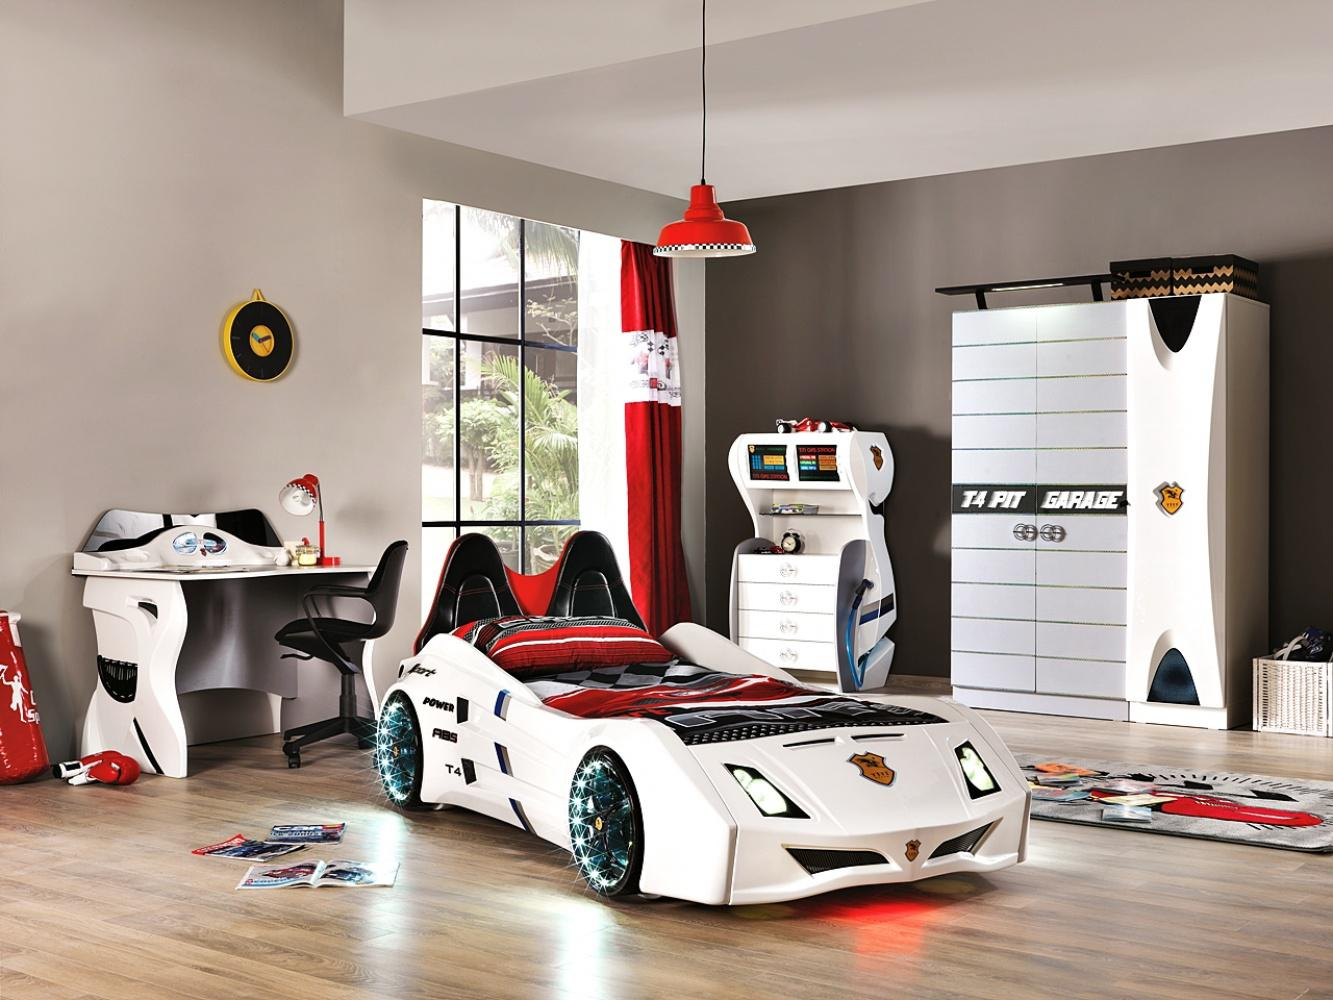 autobett kinderzimmer cat garage car wei schwarz kaufen bei m bel lux. Black Bedroom Furniture Sets. Home Design Ideas